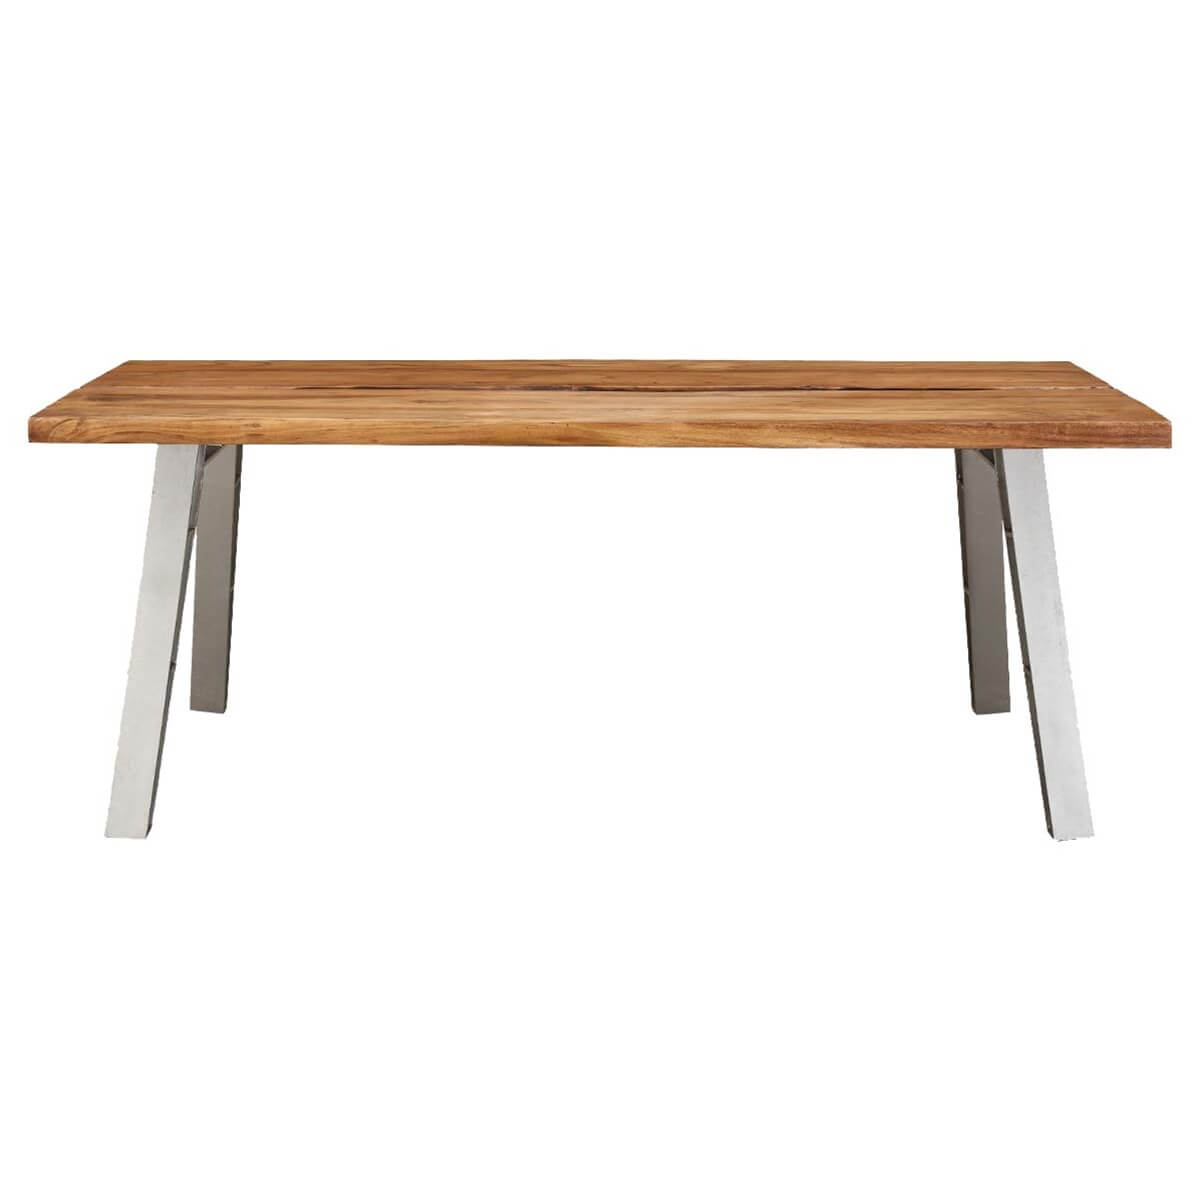 Madrid Large Wooden Dining Table with Iron Legs : 80983 from www.sierralivingconcepts.com size 1200 x 1200 jpeg 120kB